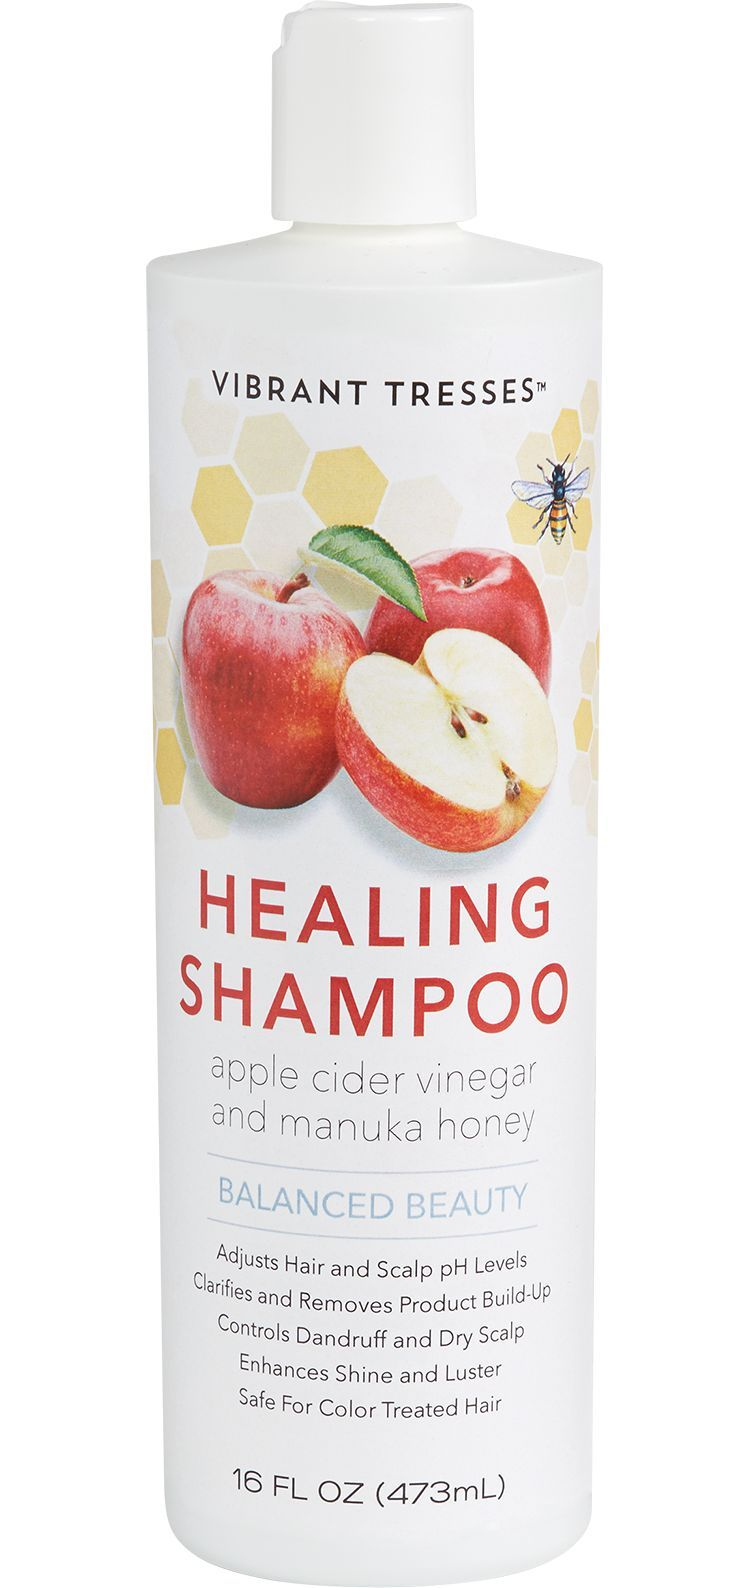 Apple Cider Vinegar Shampoo This Old Time Remedy Helps Control